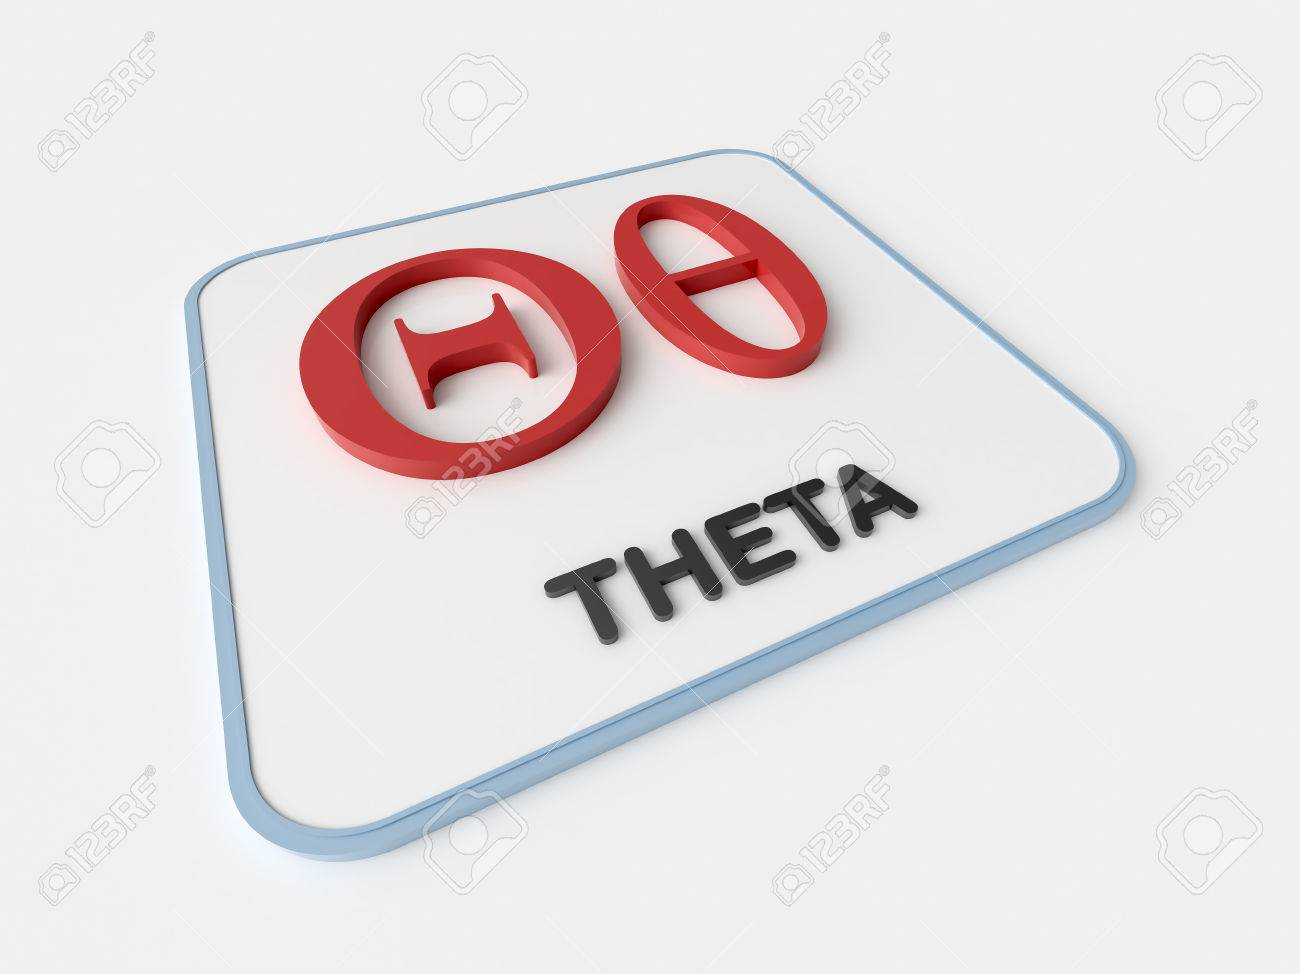 Theta greek symbol on white display board science and theta greek symbol on white display board science and mathematical concept stock photo 46428872 buycottarizona Images